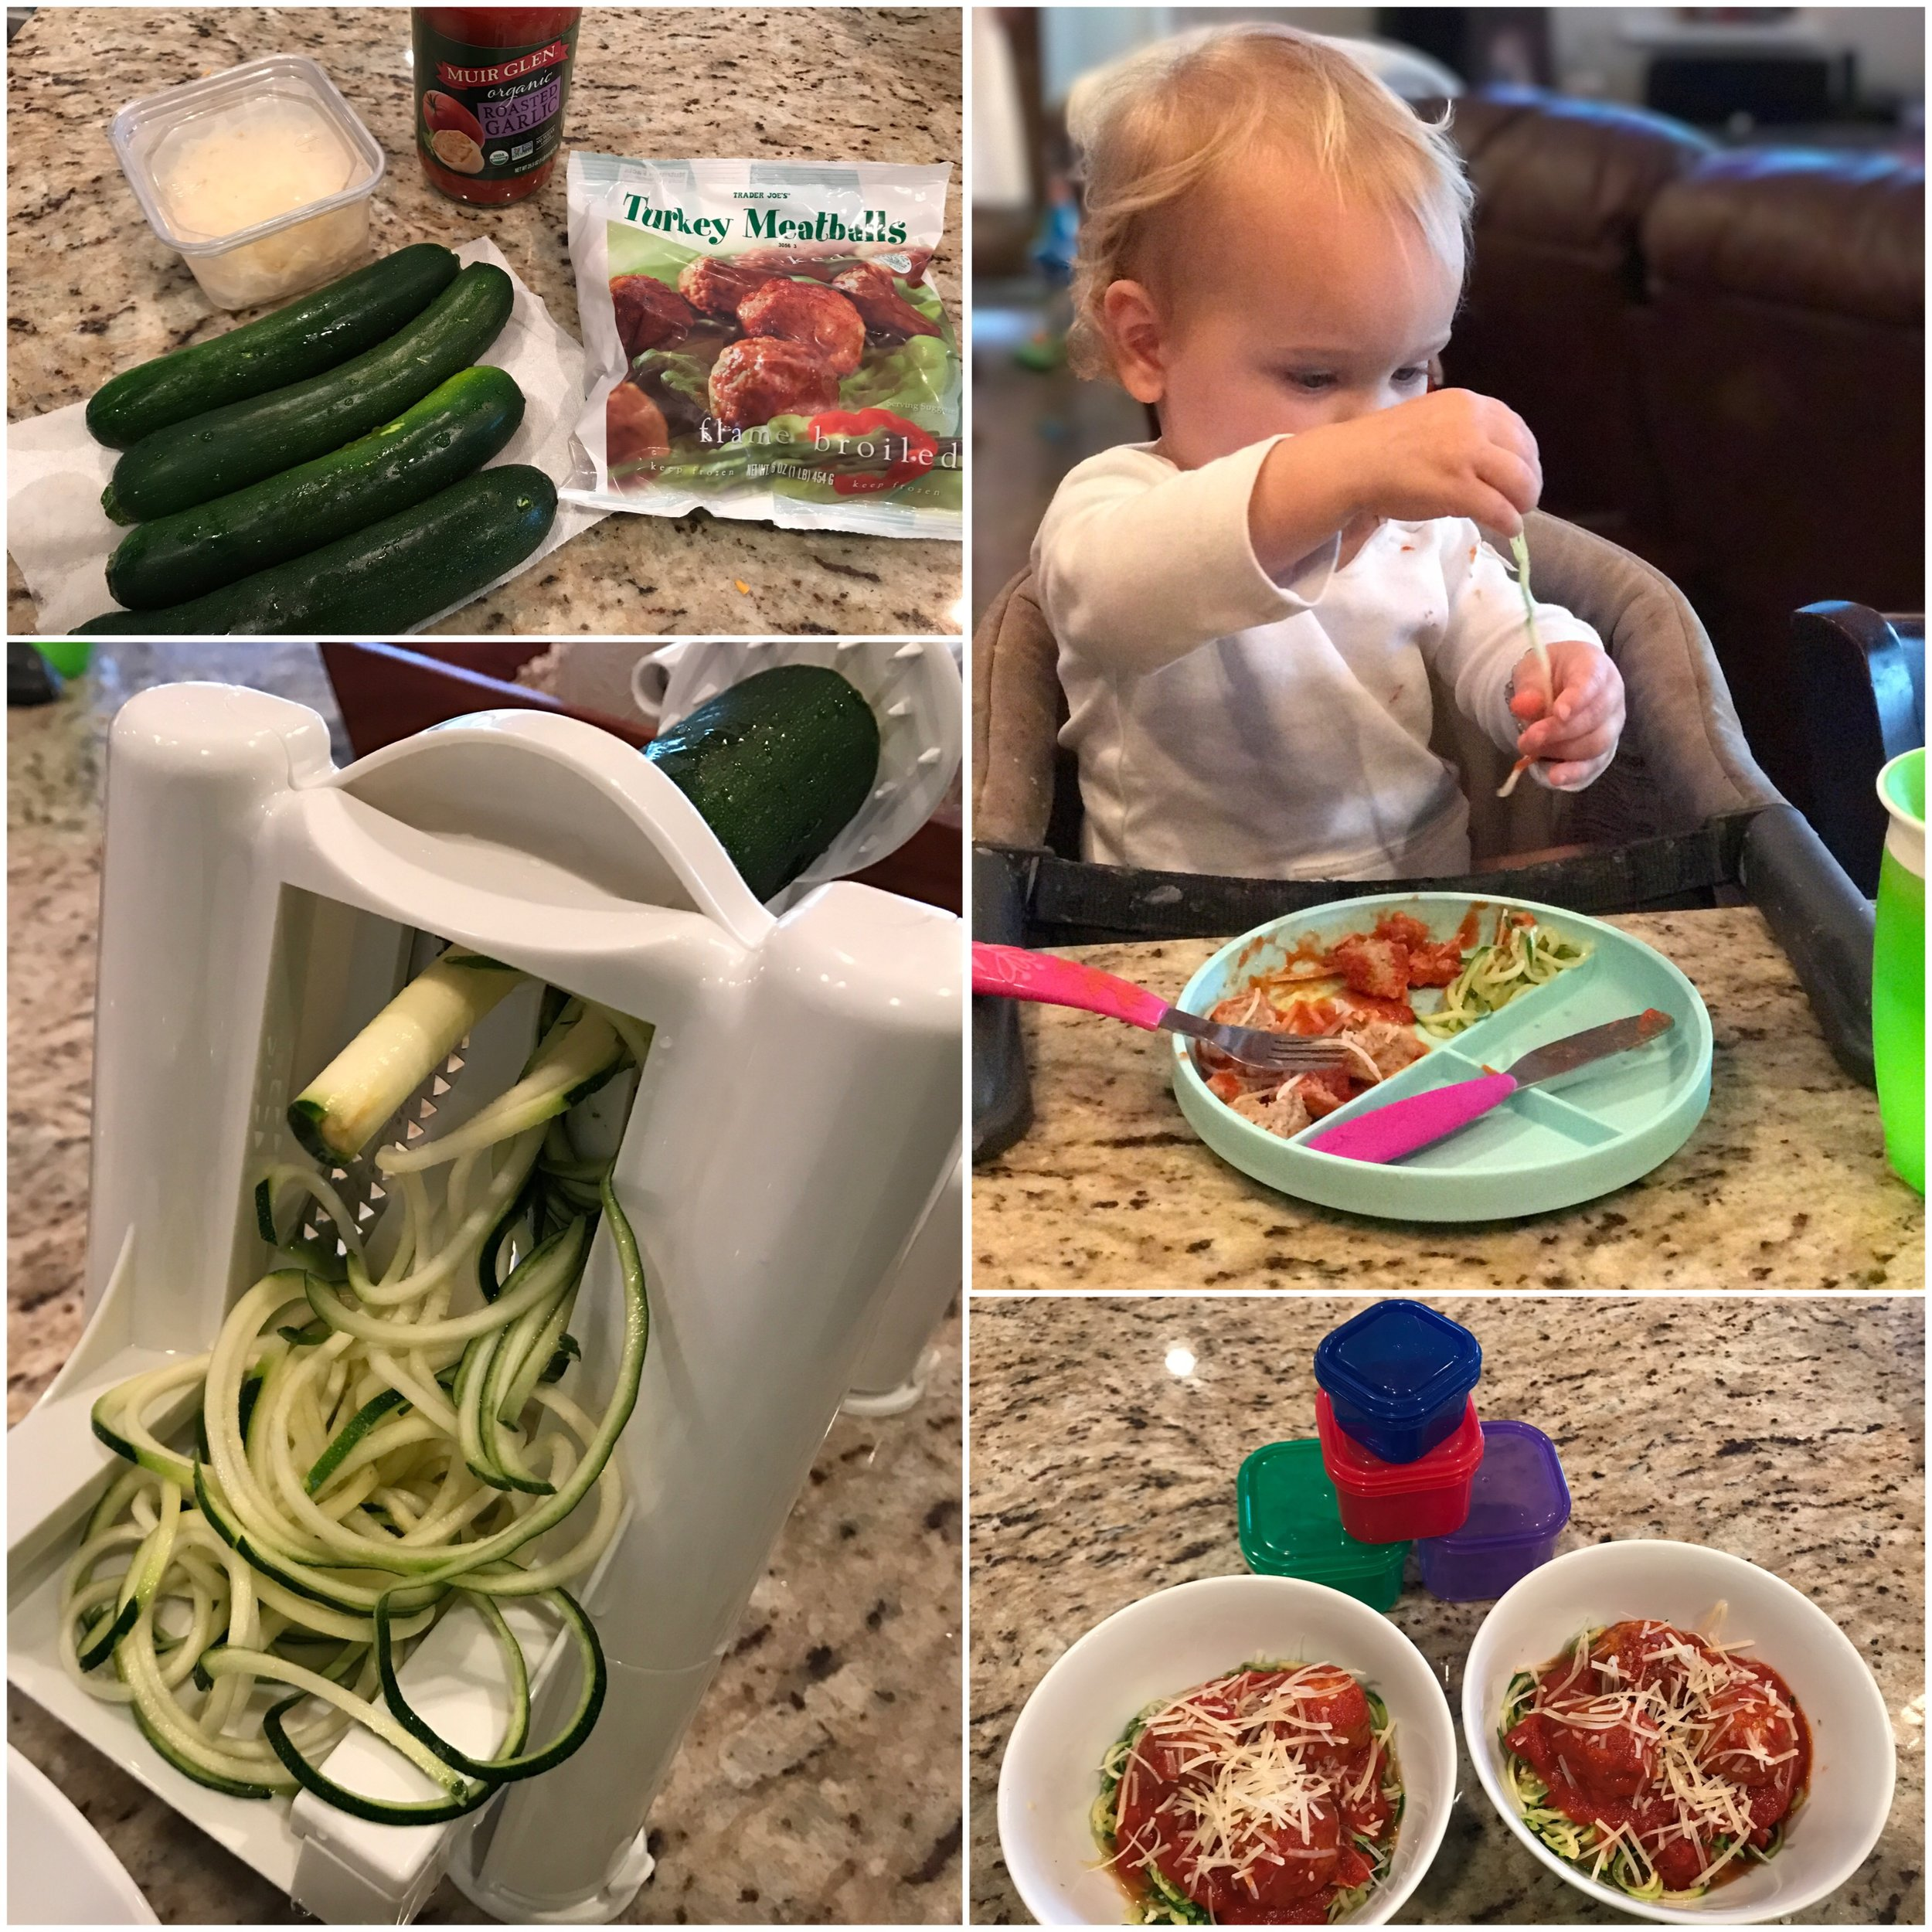 1. Spiralize the zucchini and then saute in 2 tbsp cooking oil of choice (I use EVOO) 2. While zucchini is cooking, heat meatballs in skillet according to package directions + add sauce 3. Separate into bowls, top with parmesan. ENJOY!